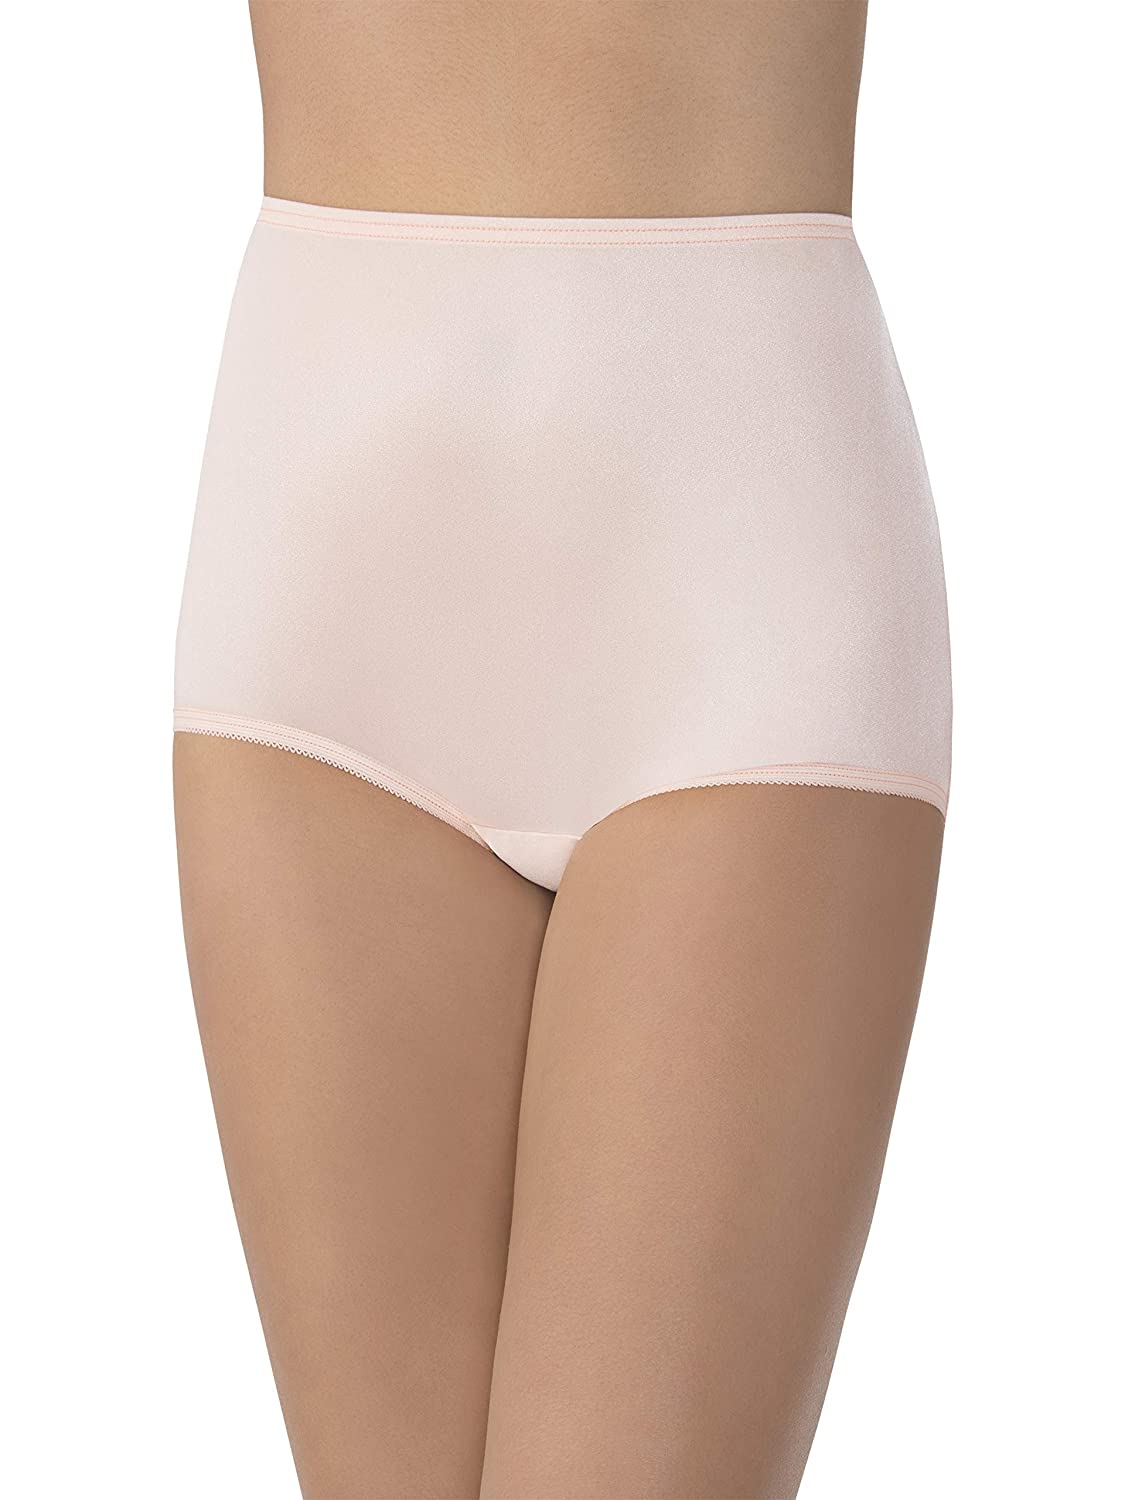 Vanity Fair Womens Standard Perfectly Yours Ravissant Tailored Brief Panty 15712